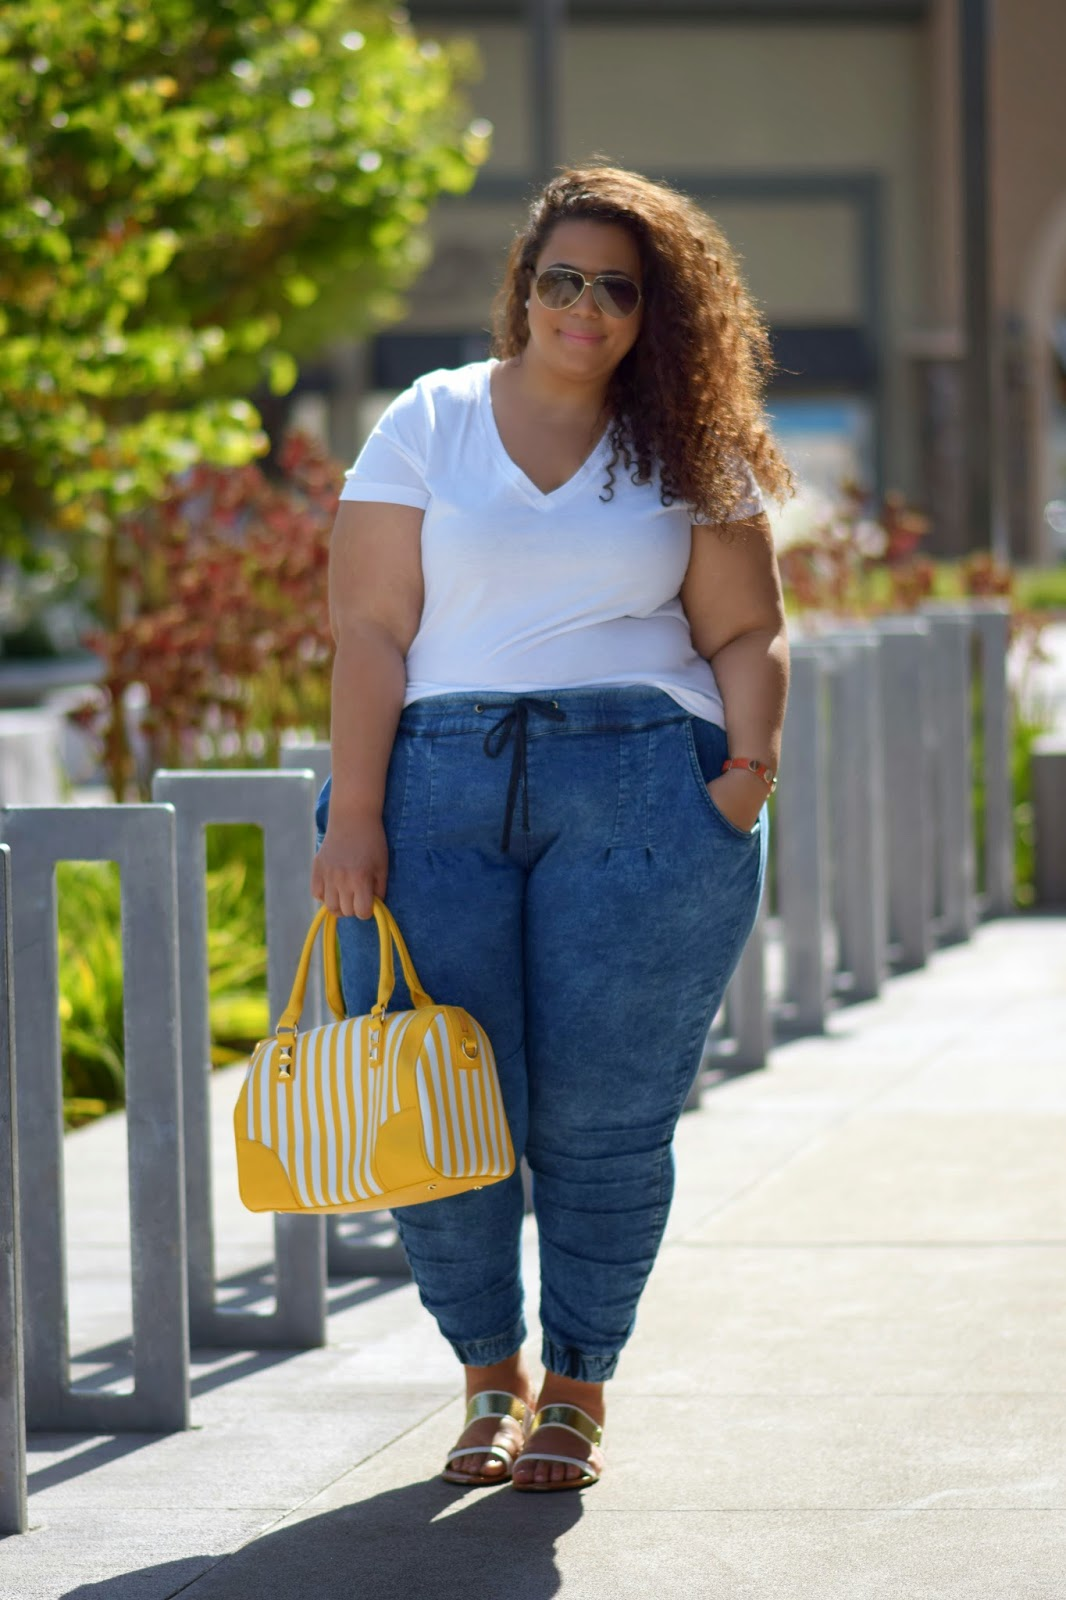 Big W Photo Sizes T Shirt And Jeans Do Exist For Plus Size Girls Garnerstyle